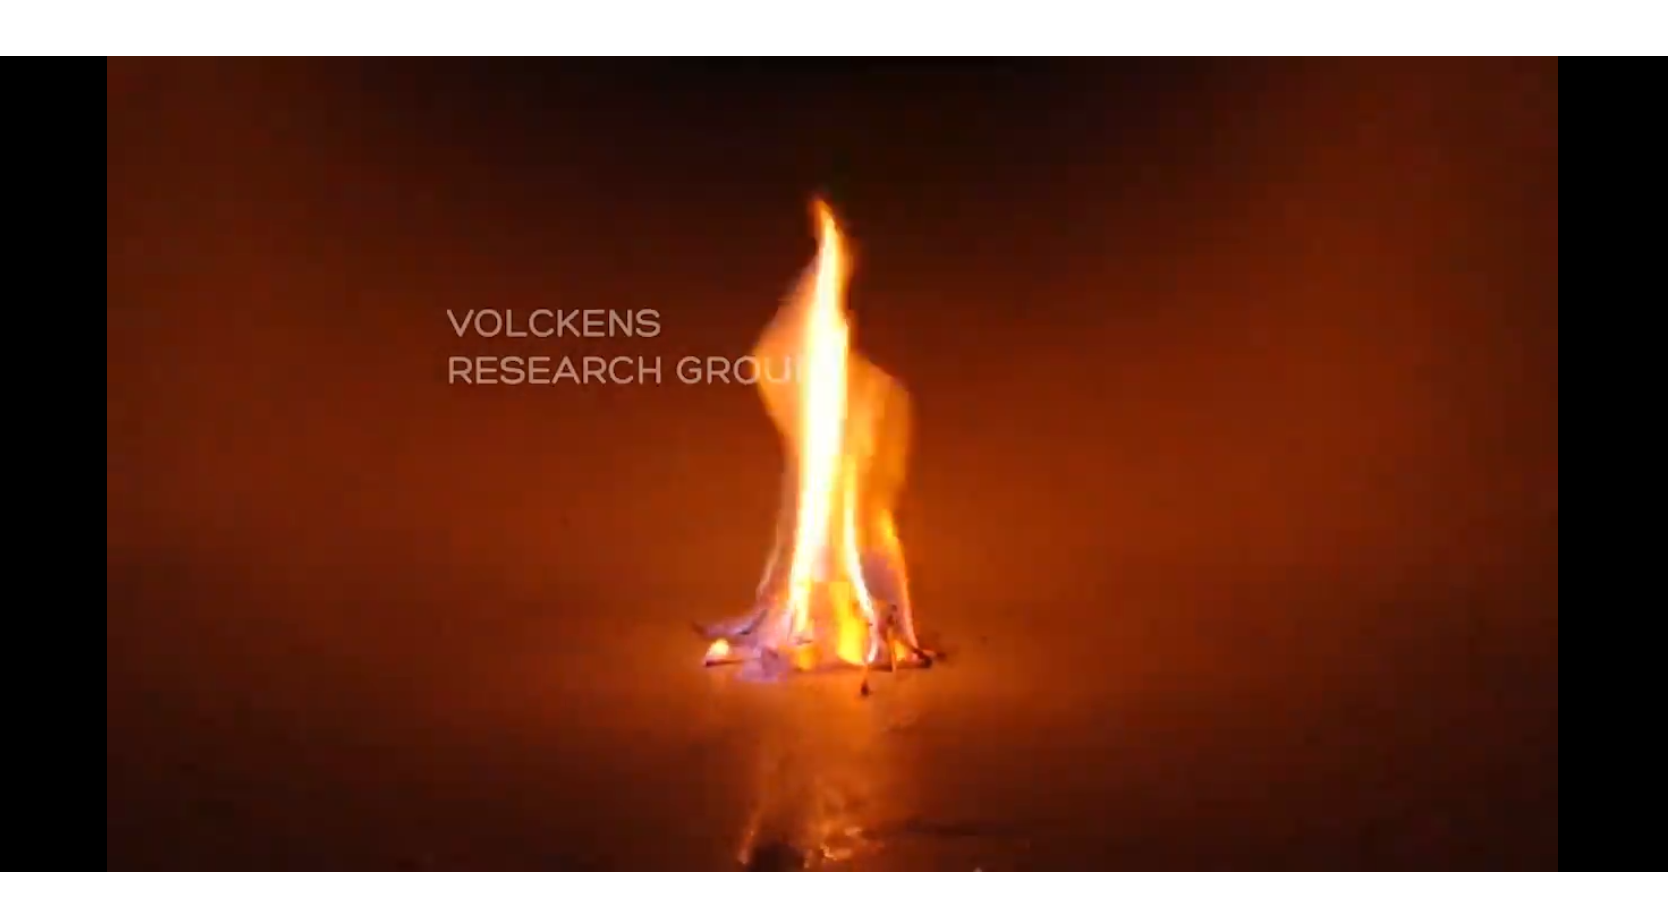 The Volckens Research Group